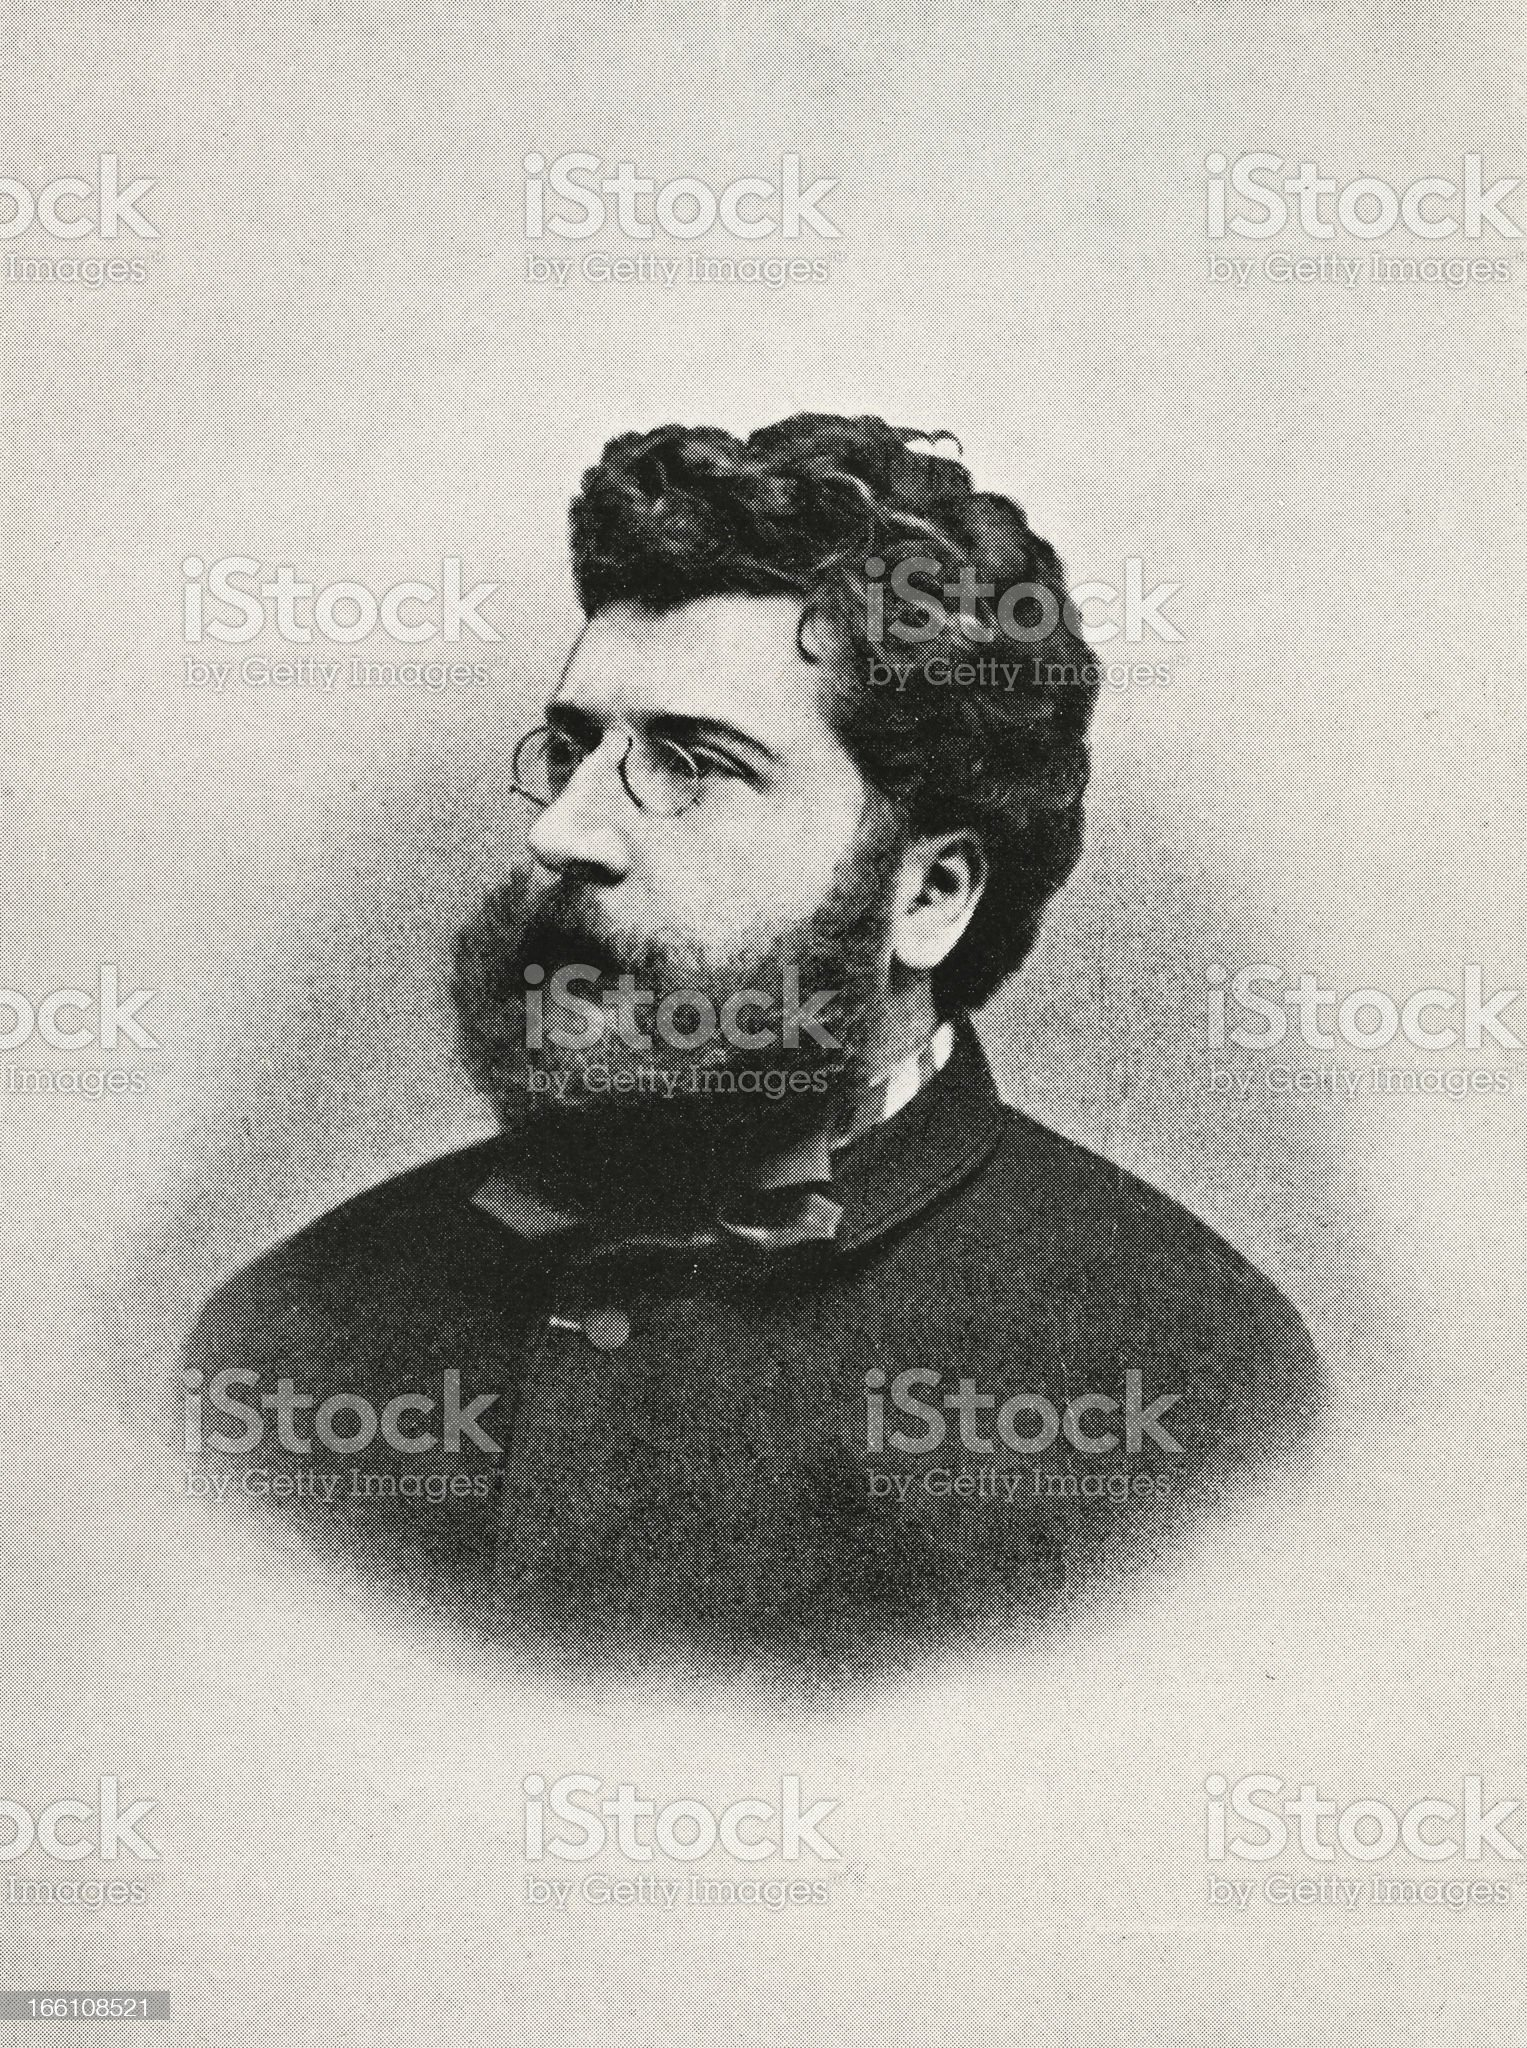 Georges Bizet royalty-free stock vector art